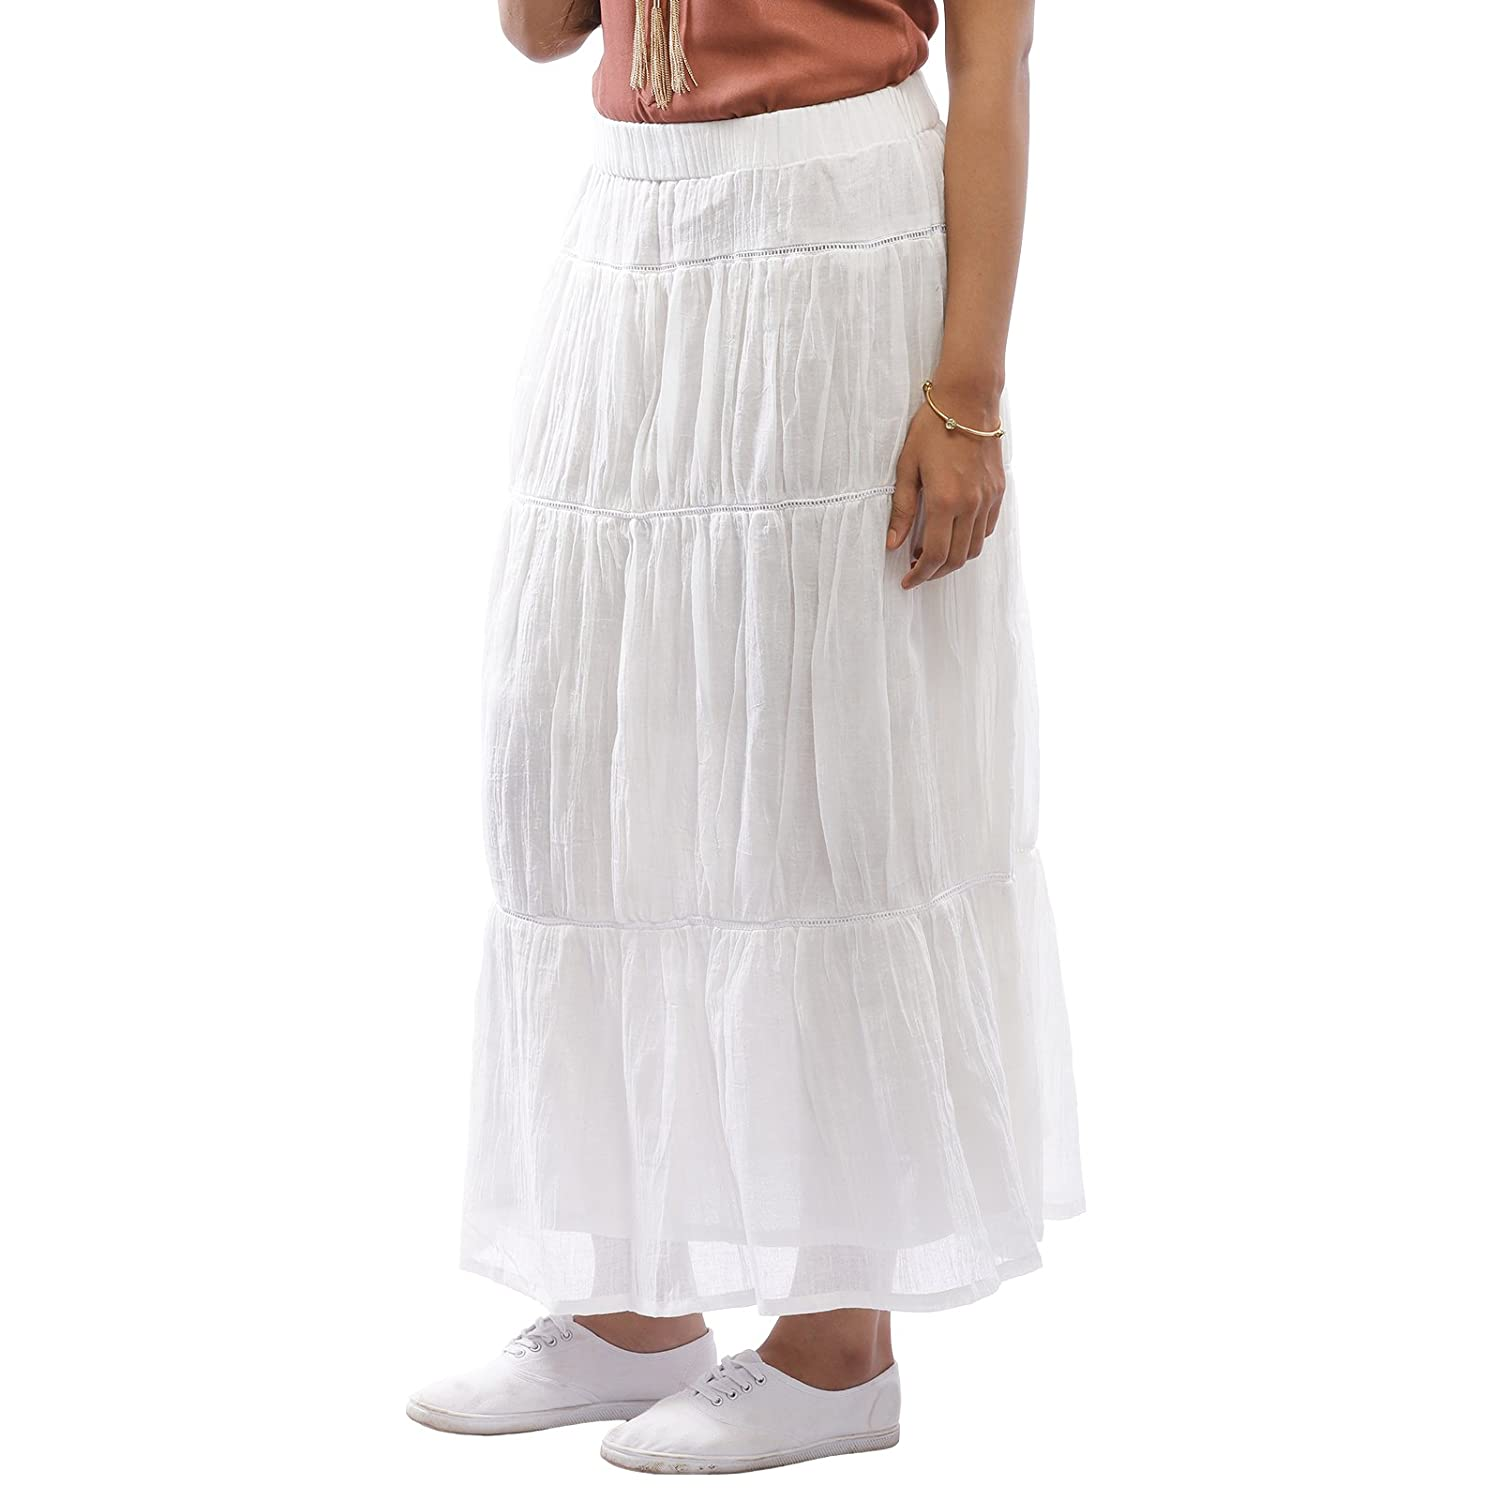 0389516dd2 BollyWoo White Flared Skirt White Cotton Skirt (BWFEV-005)  Amazon.in   Clothing   Accessories